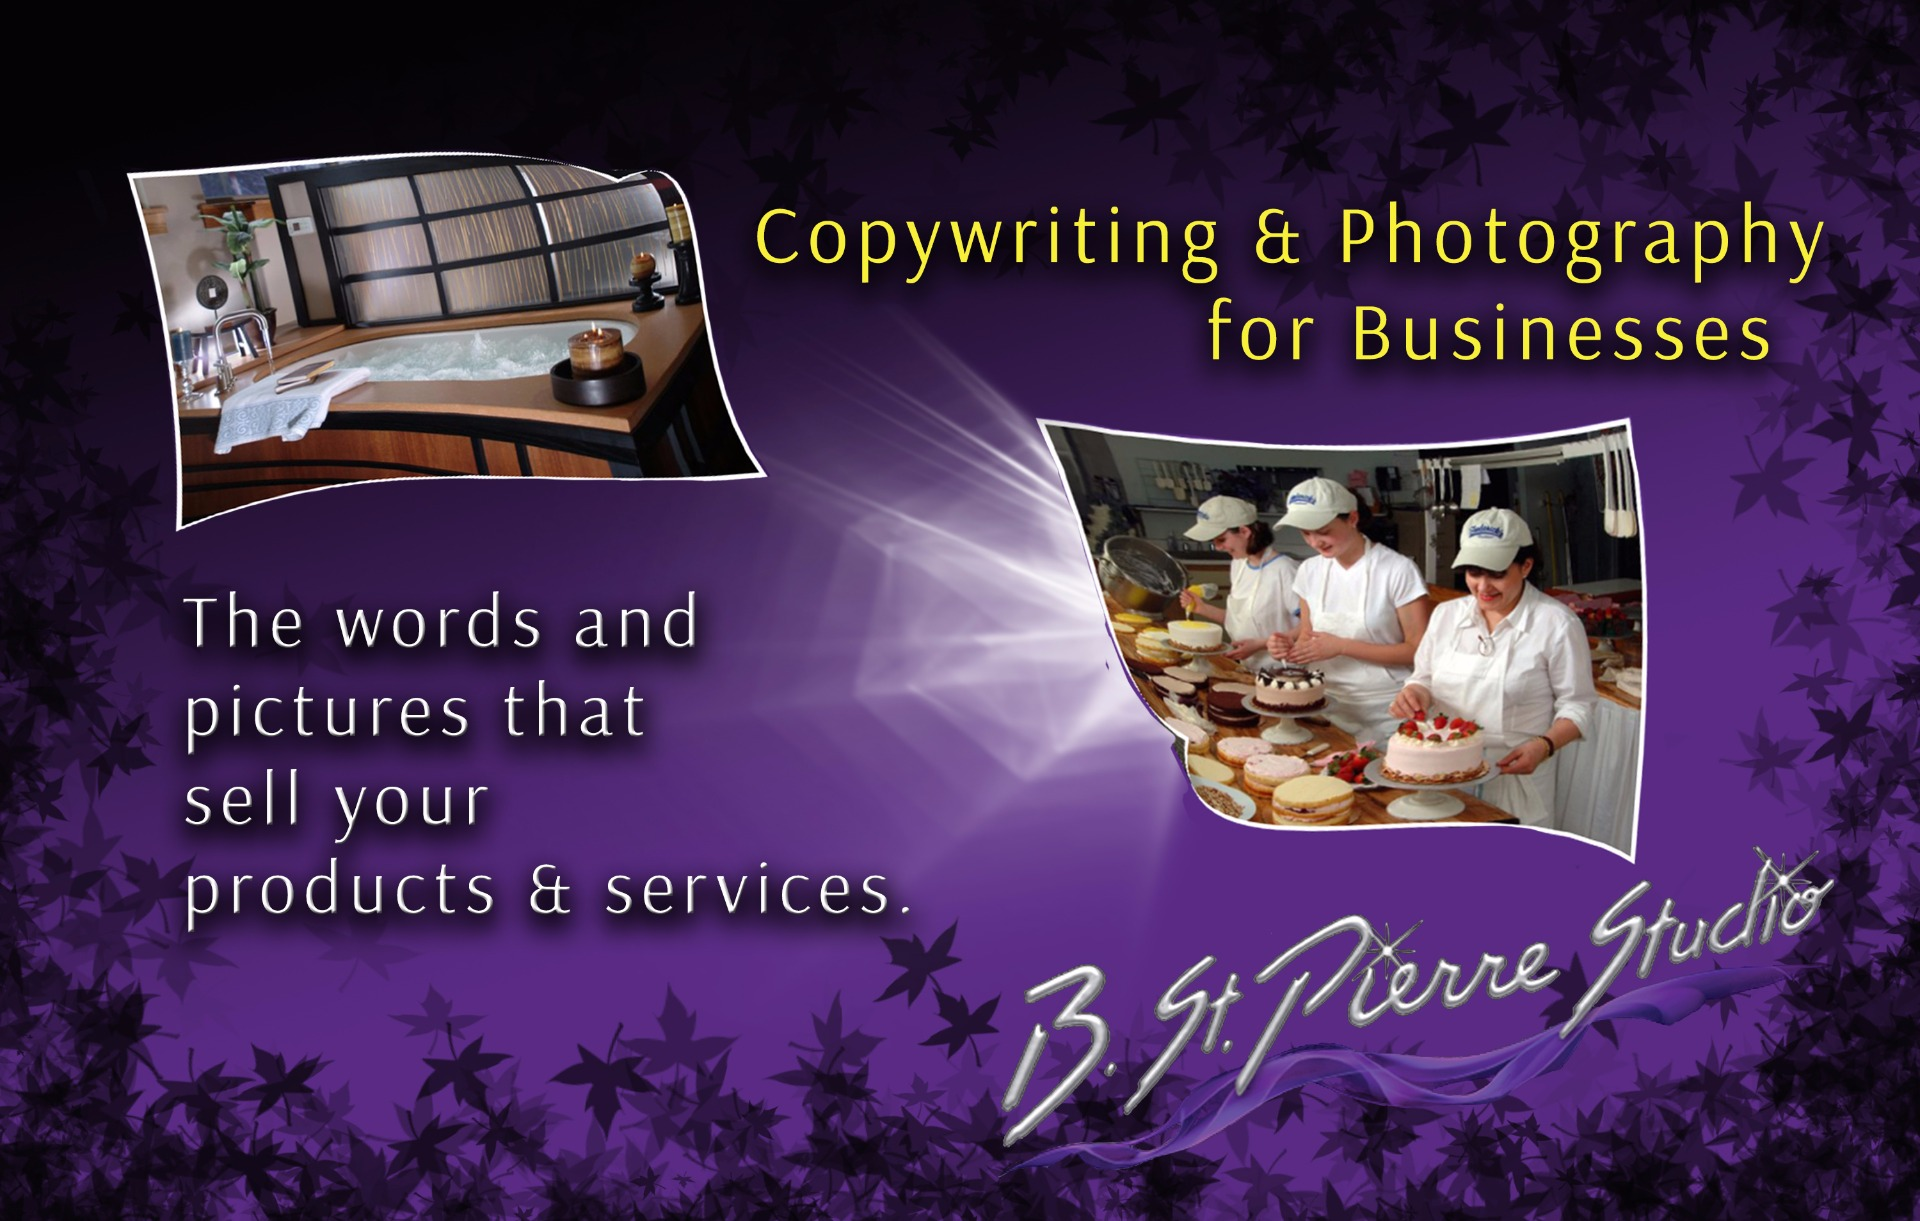 Copywriting & Photography for Businesses